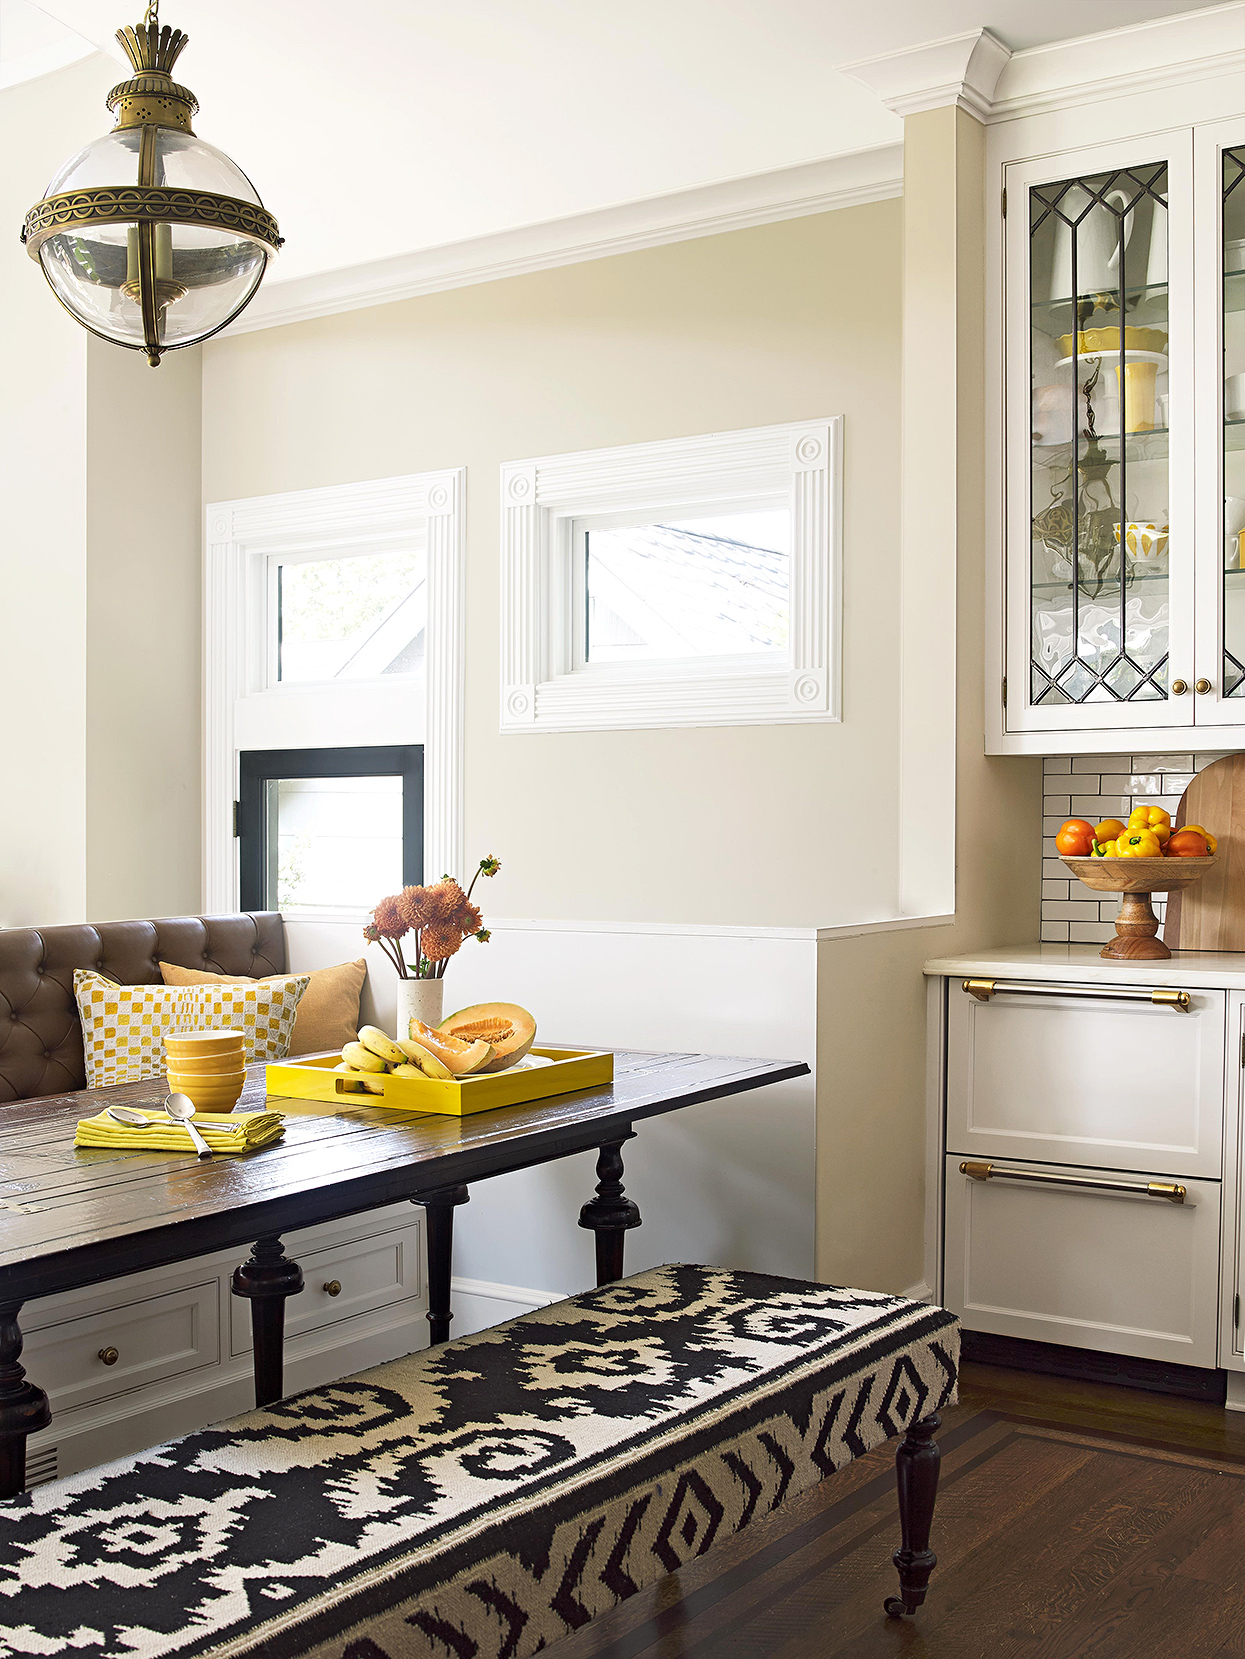 banquette and upholstered black and white graphic bench